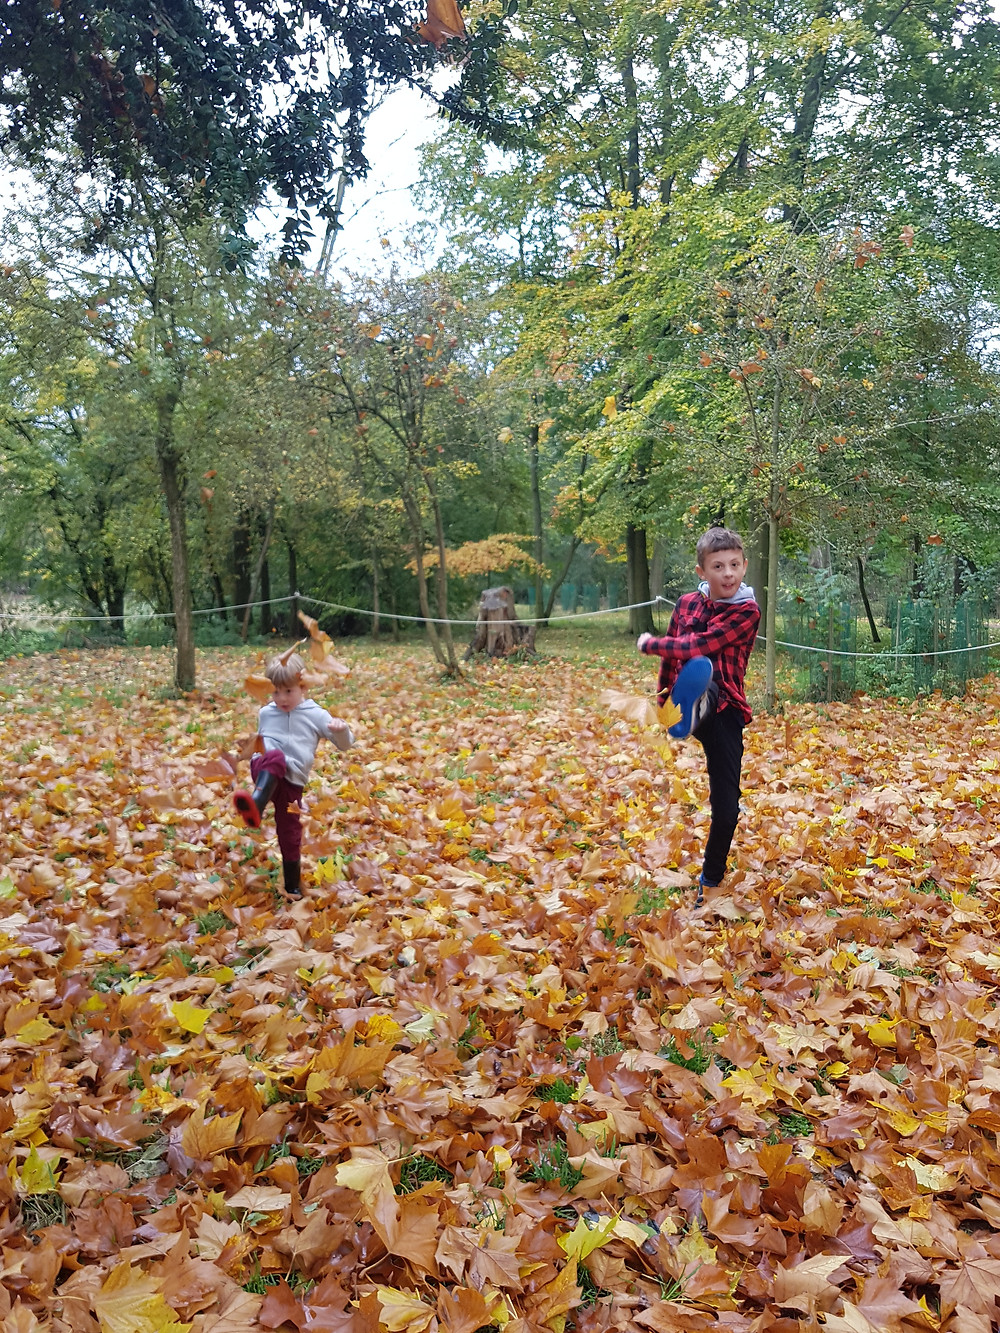 Children kicking autumn leaves, Going on a sound hunt, sensory play for kids